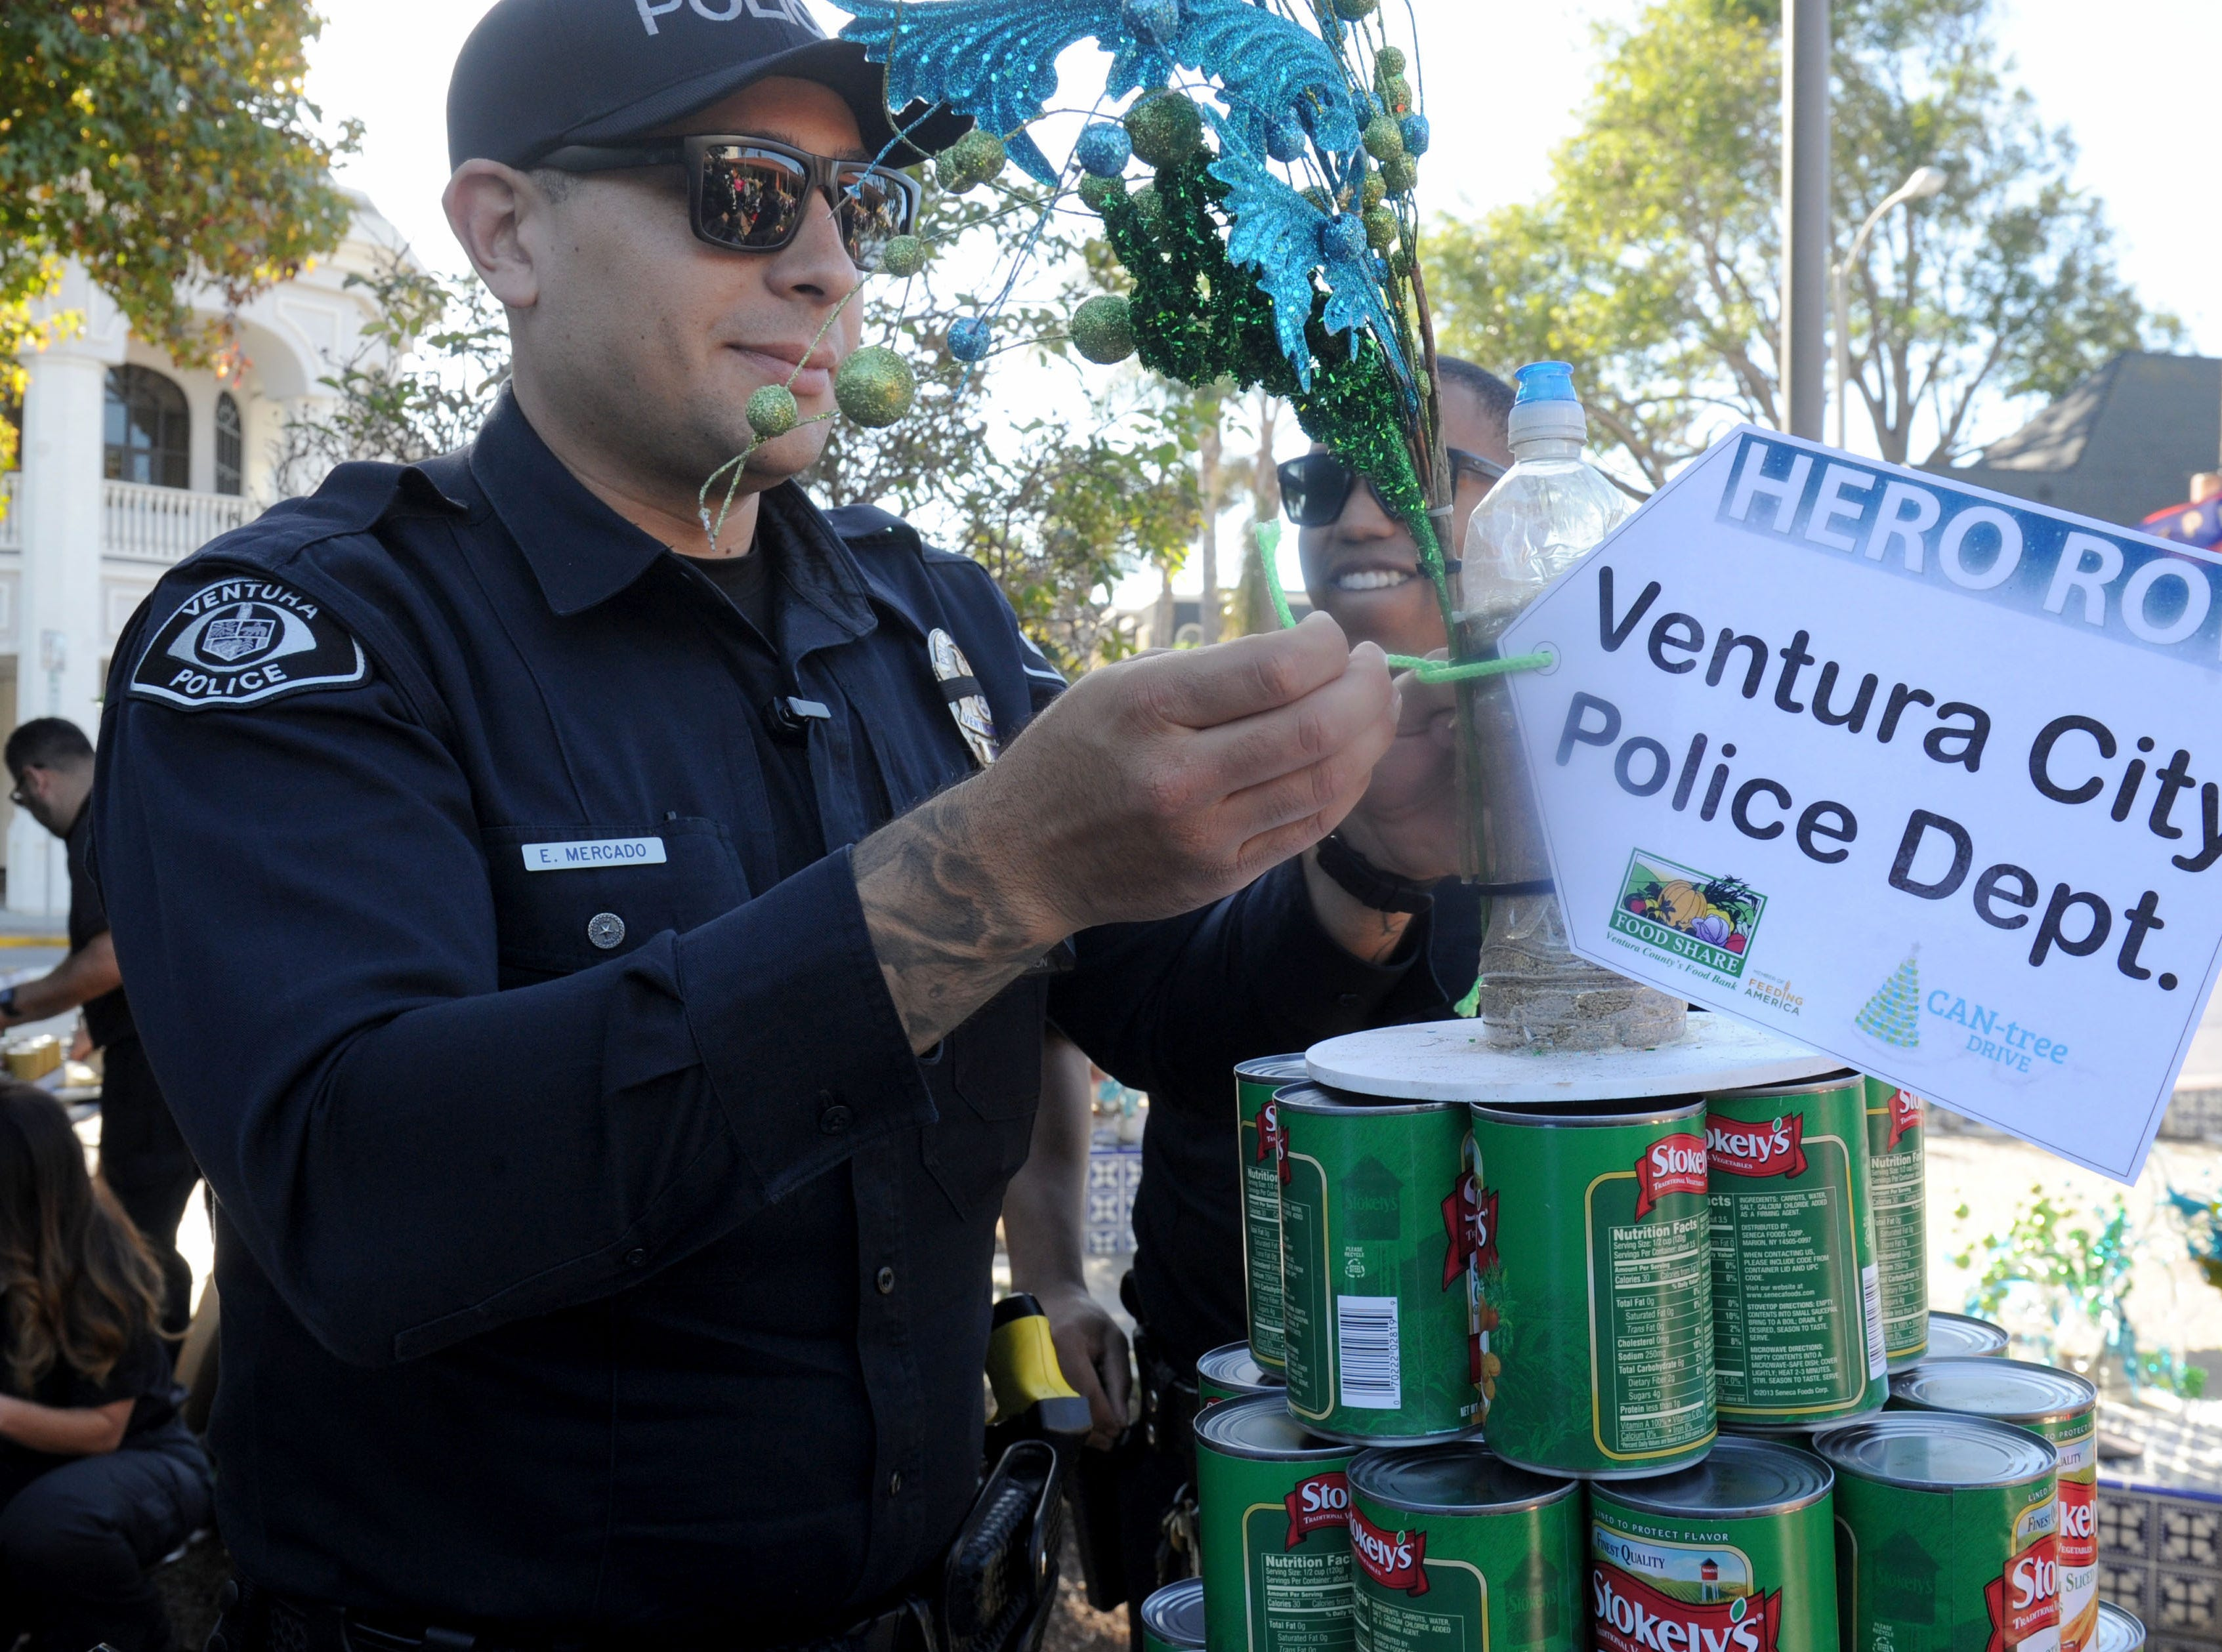 Ventura Police Officers Emerson Mercado, left, and Zane Alston add the last piece to their can tree at FOOD Share's annual CAN-tree drive in downtown Ventura at Figueroa Plaza.